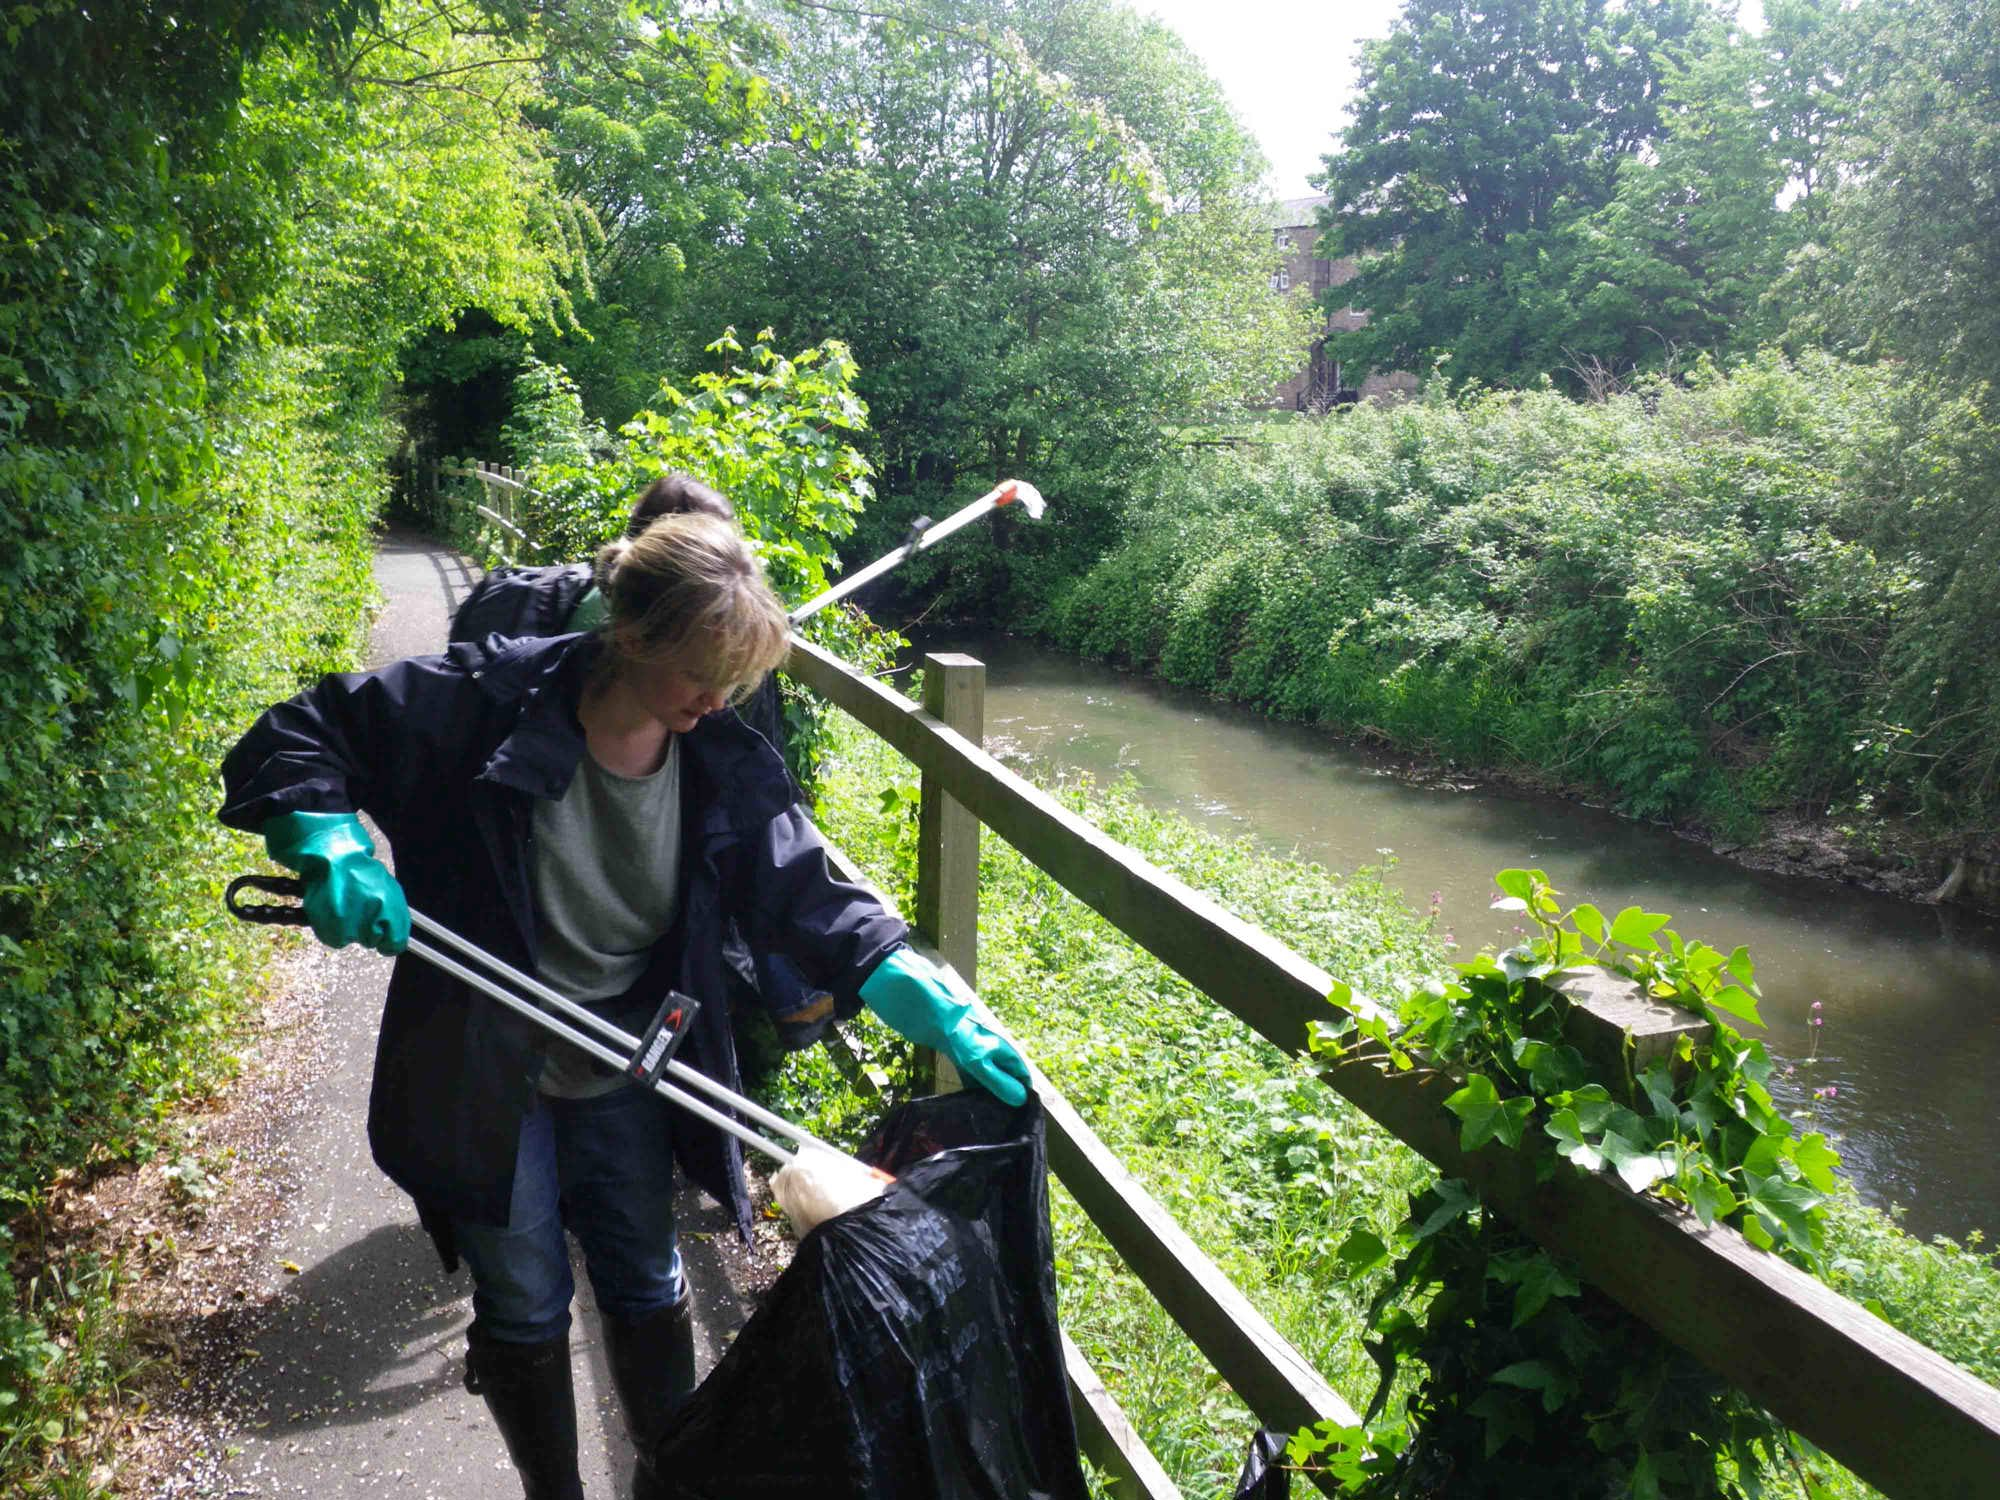 Clearing litter from the banks of the river Lugg